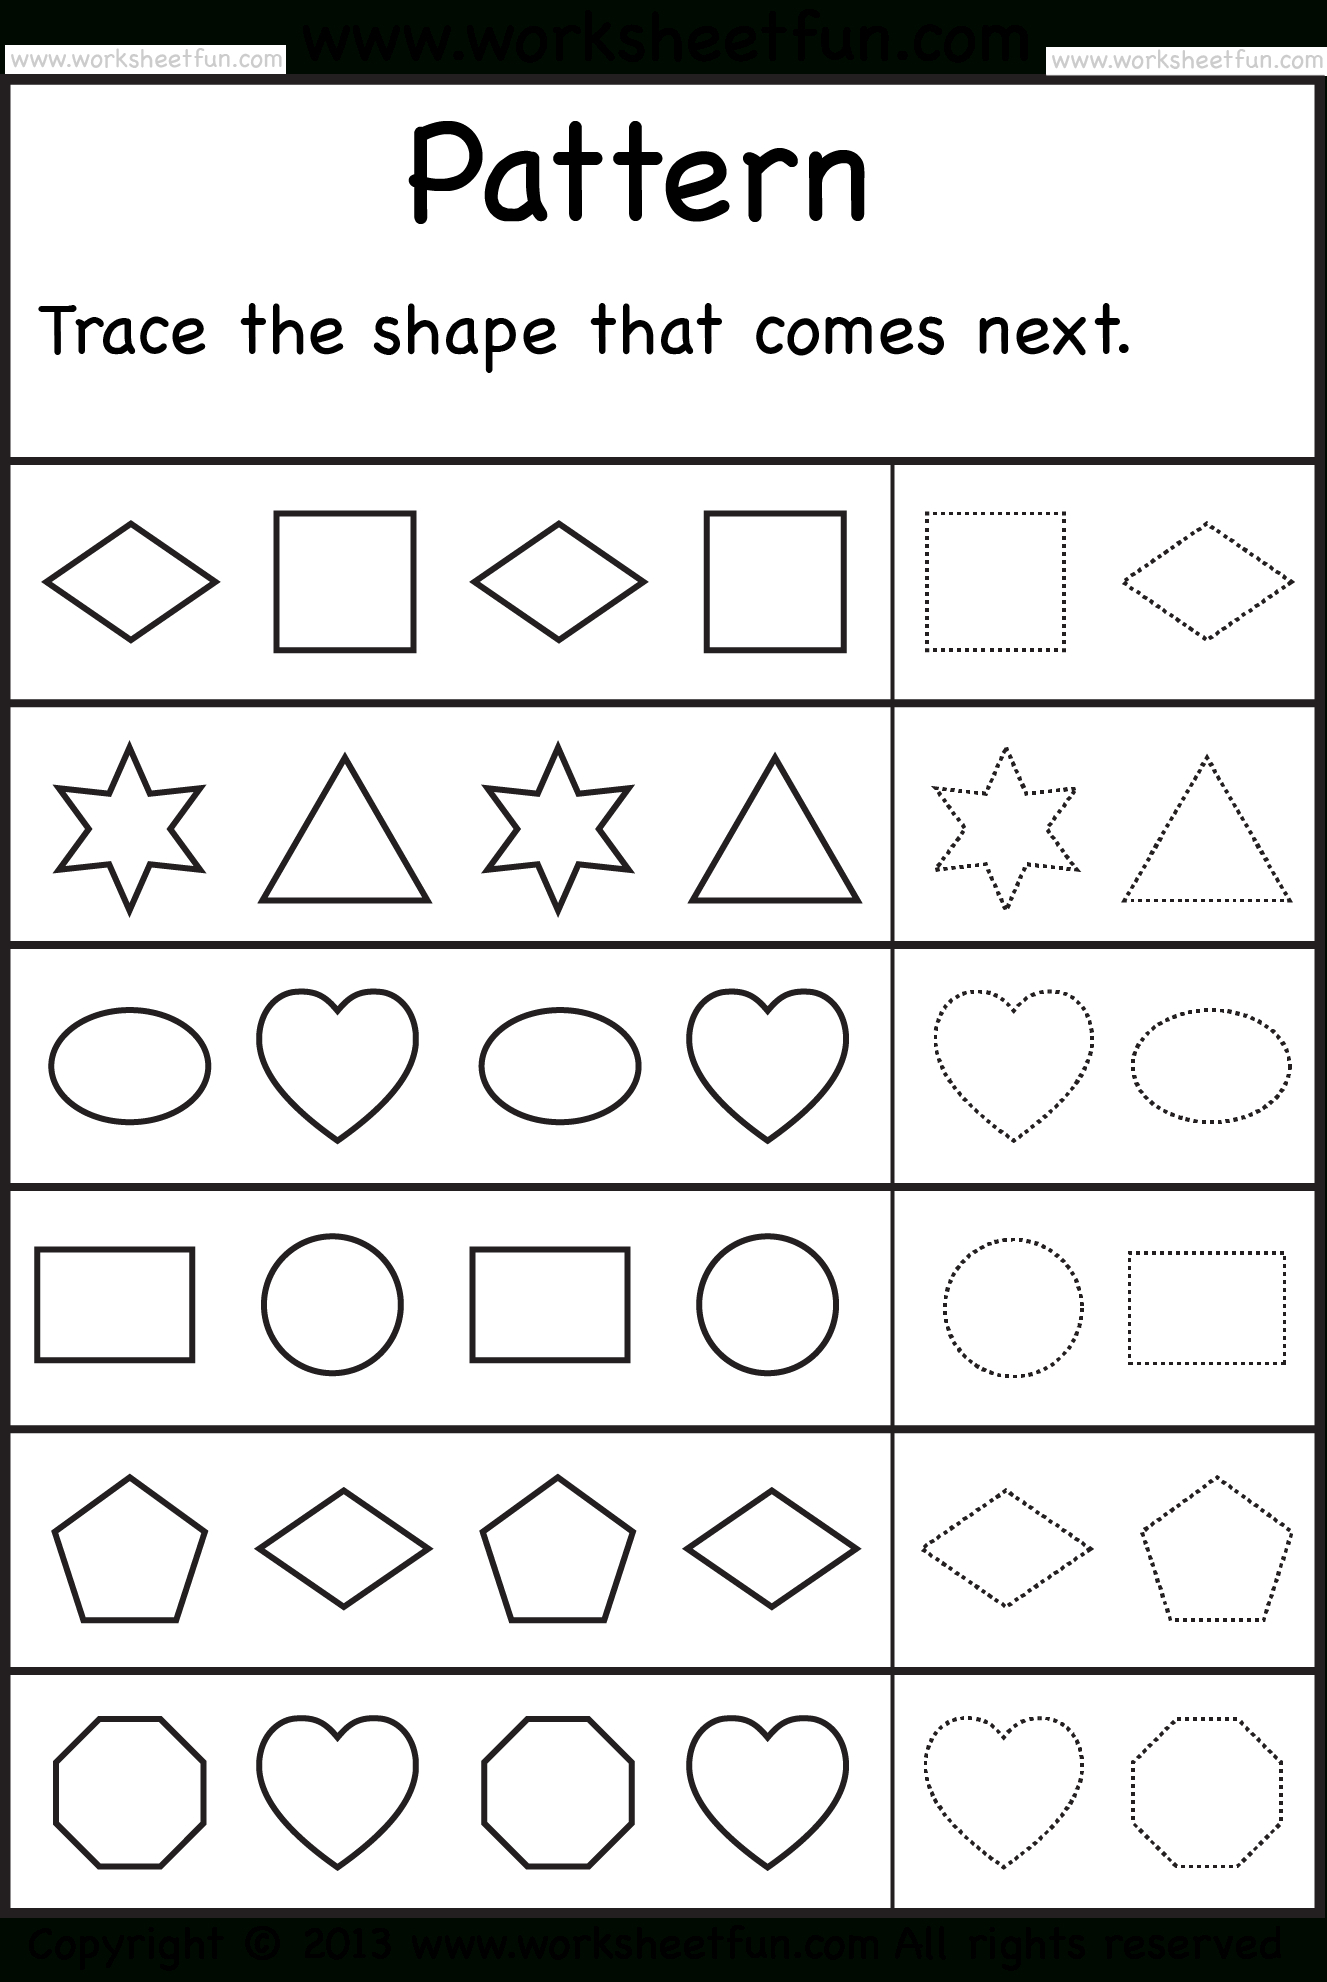 Patternwhatcomesnextwfun2  Crafts And Worksheets For